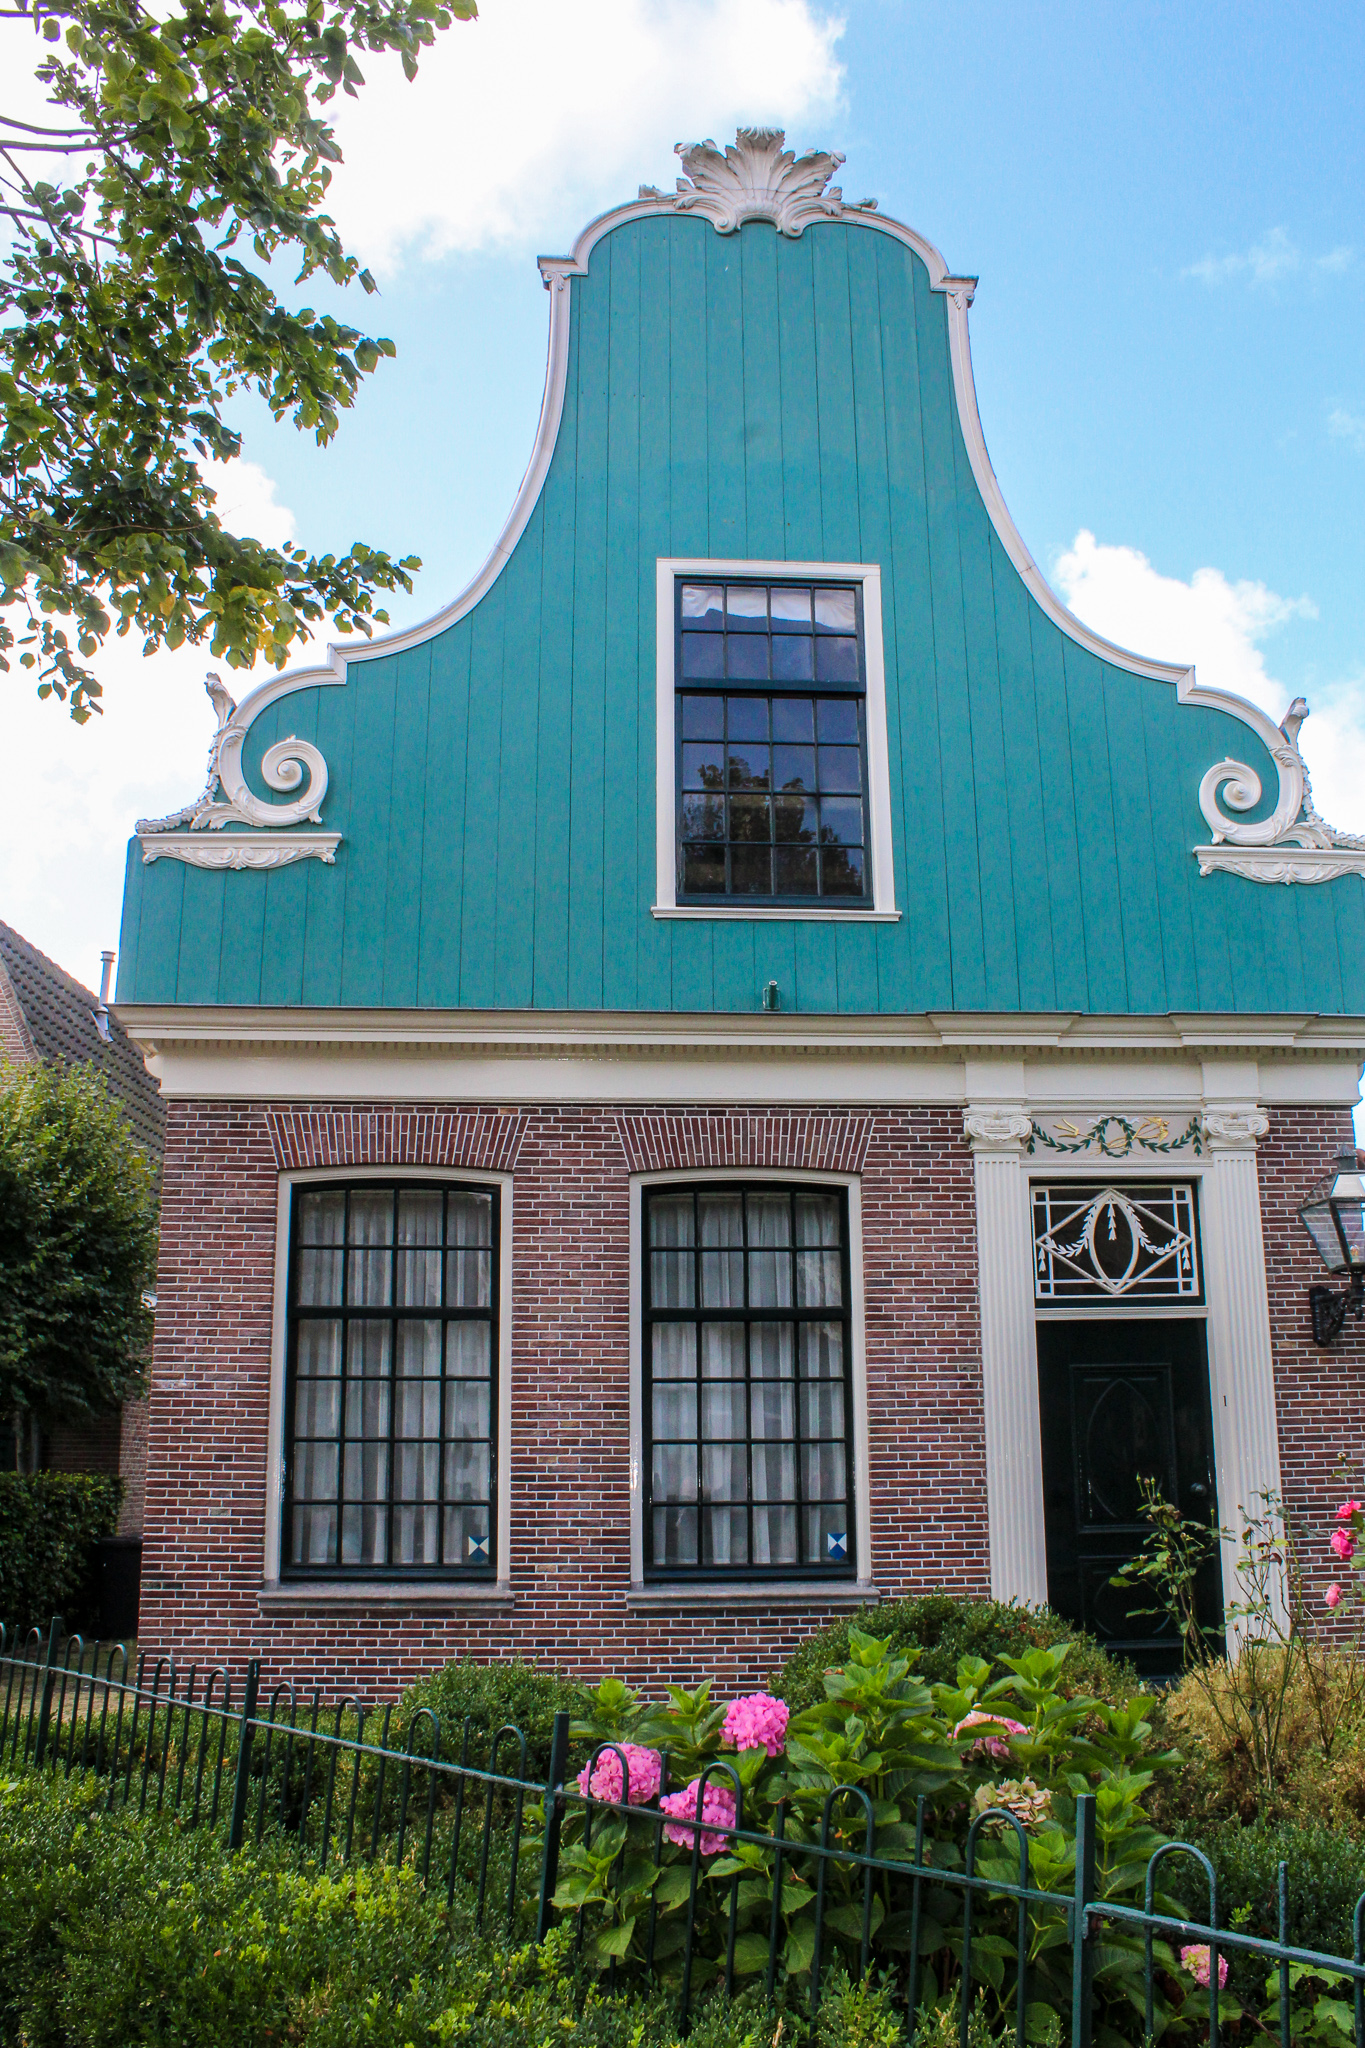 zaanse schans is one of the half day trips from amsterdam